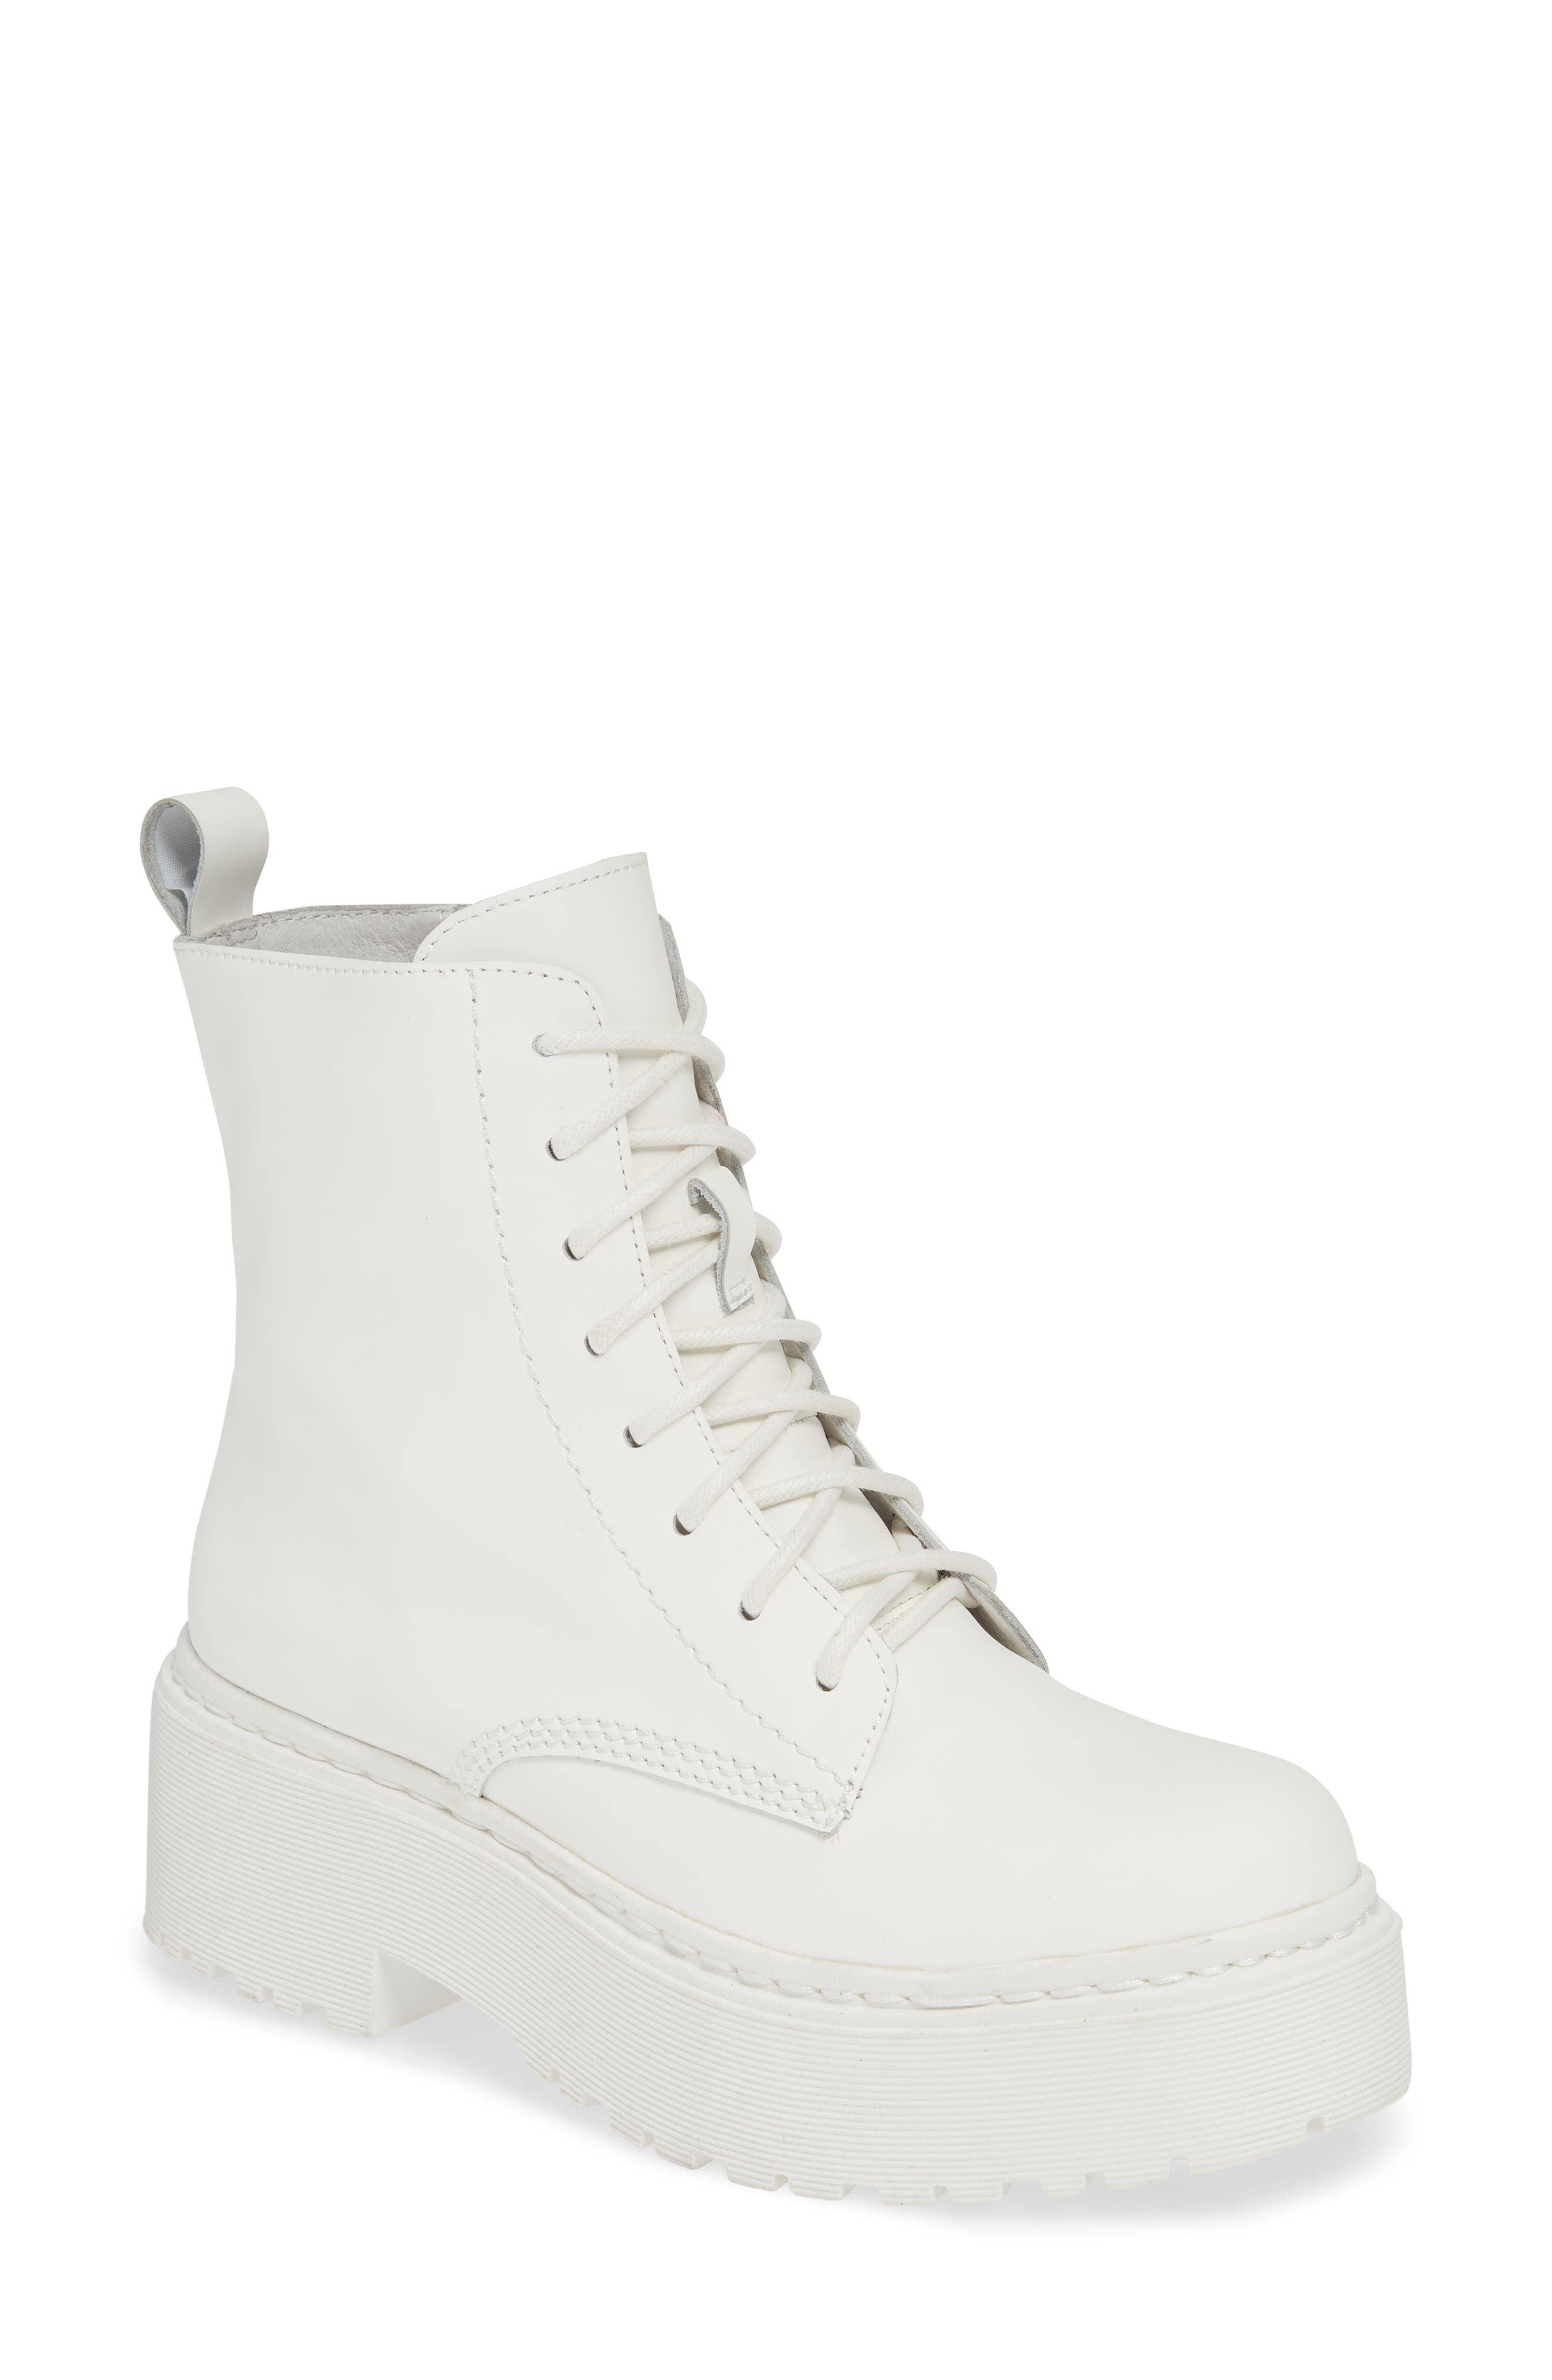 Jeffrey Campbell District Combat Boot, White